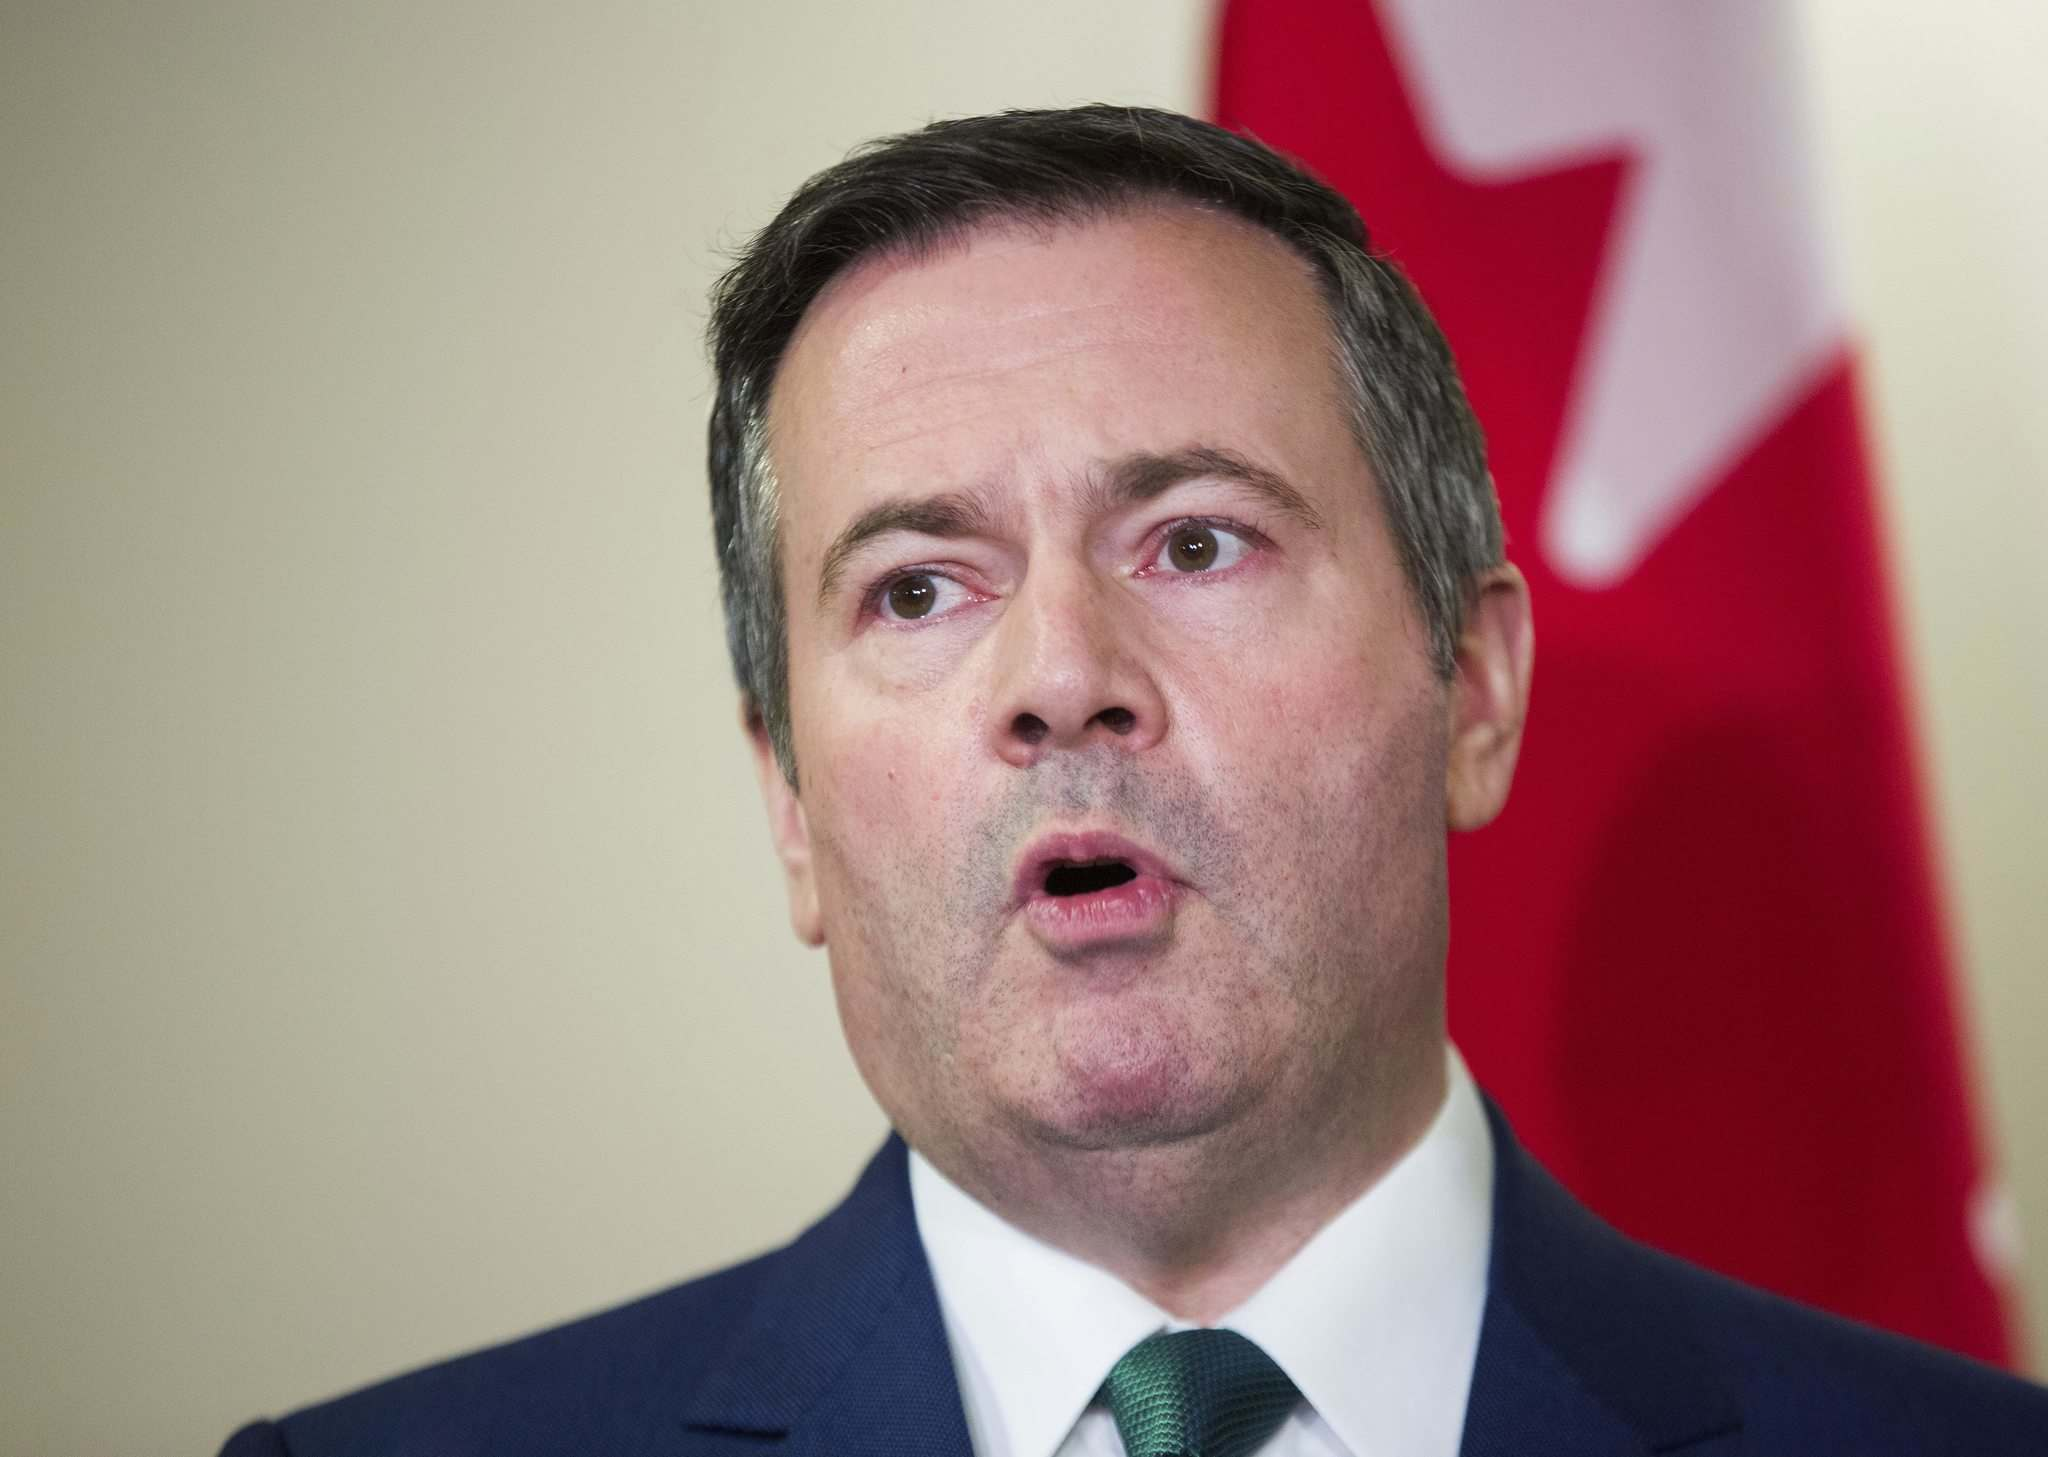 Alberta Premier Jason Kenney is waging political war against the federal carbon tax and against anyone who gets in the way of oil production and pipelines. (Todd Korol / The Canadian Press Files)